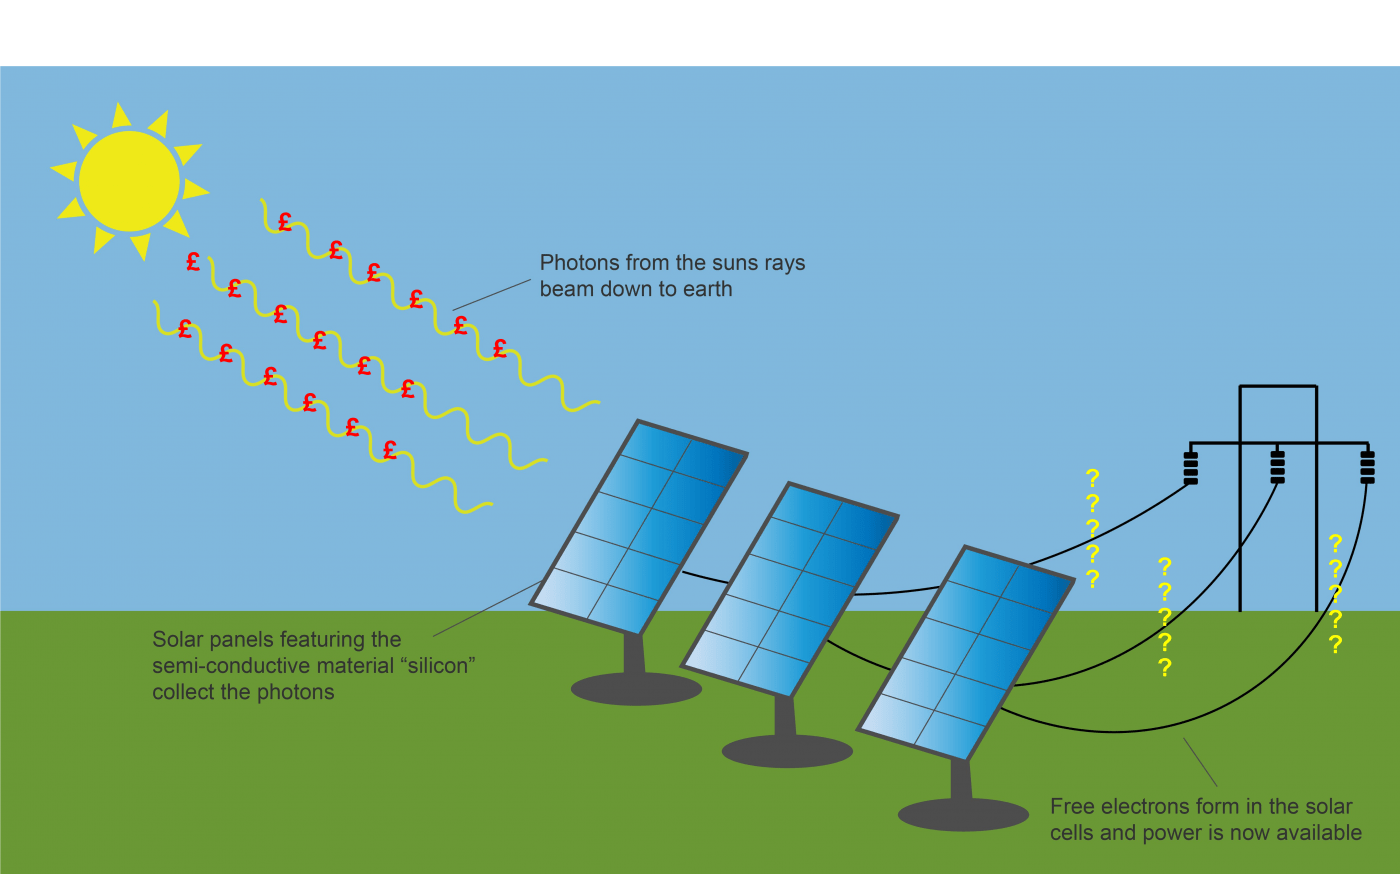 solar pv wiring diagram uk 2003 softail do panels increase the value of your home